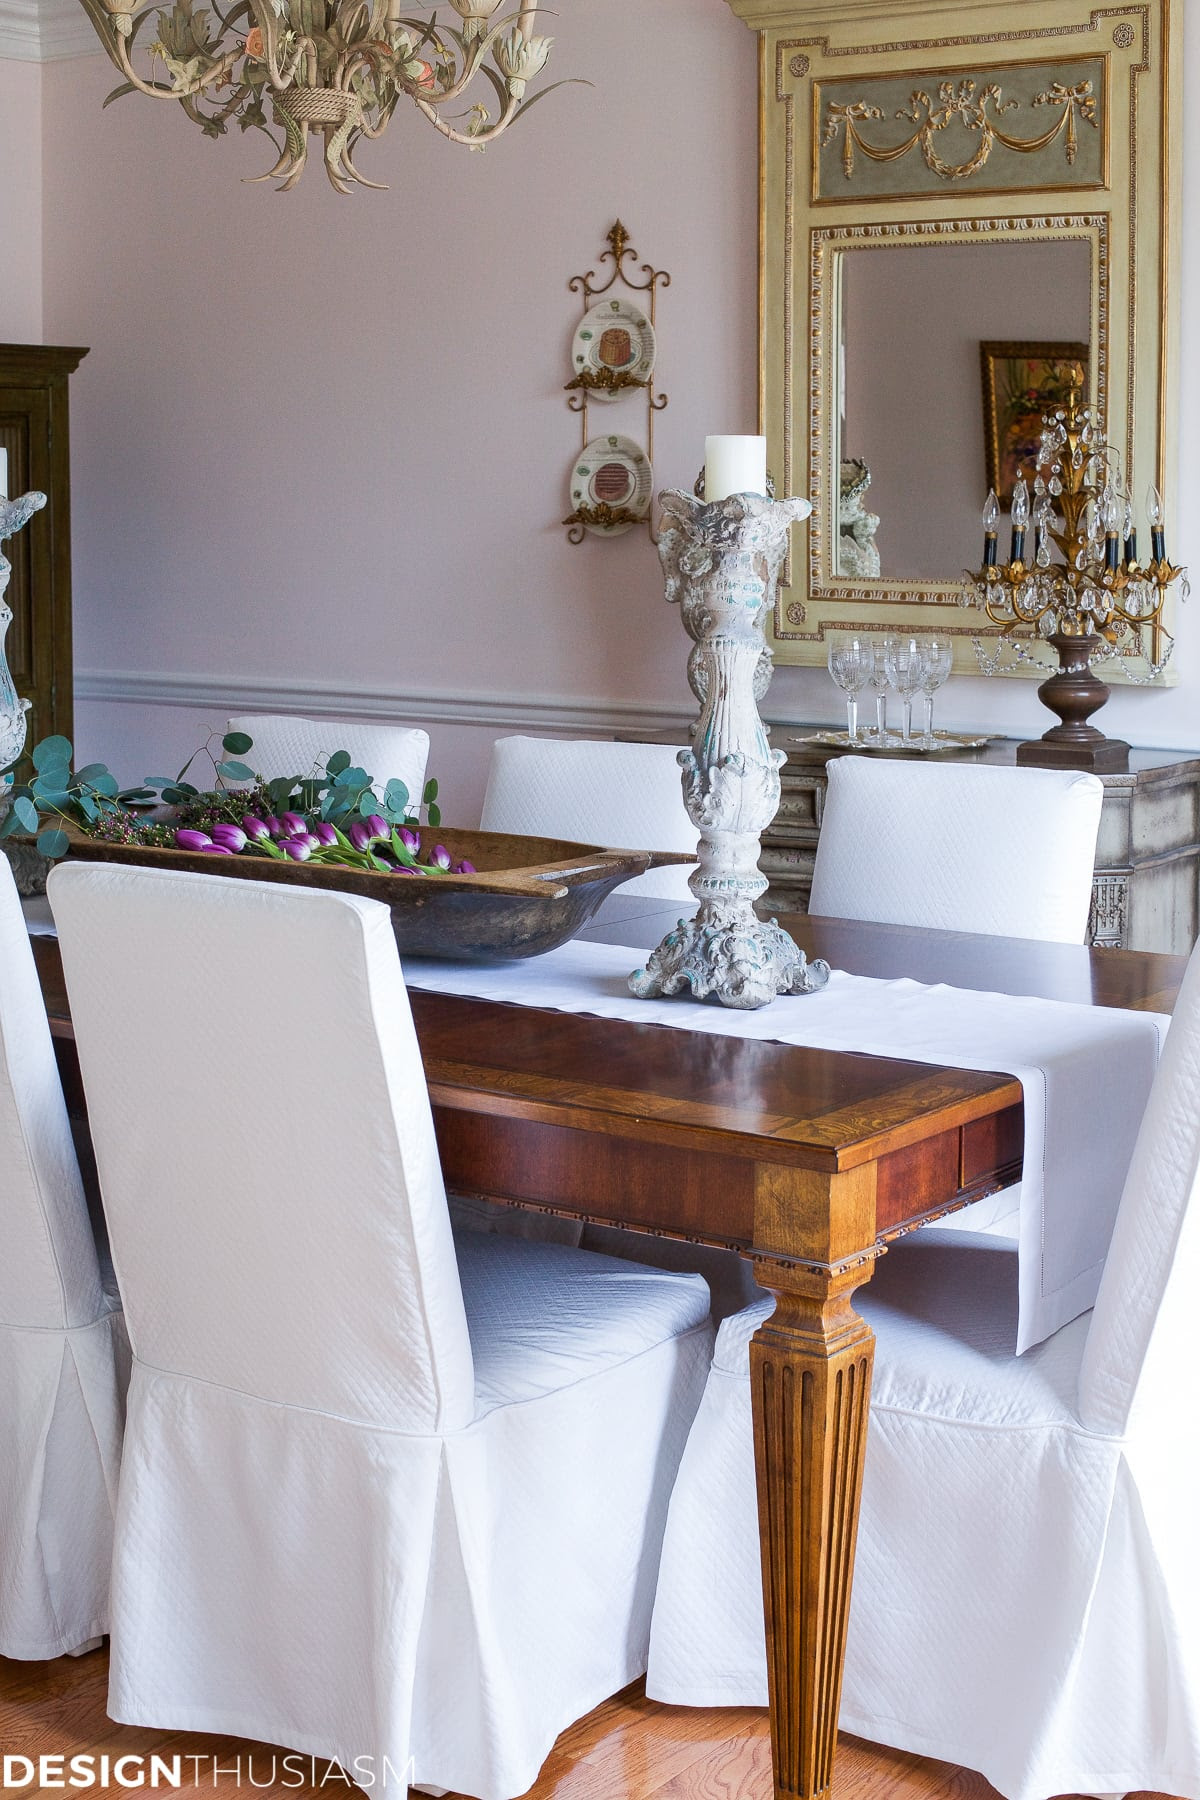 Elegant dining rooms | French Country style | Designthusiasm.com